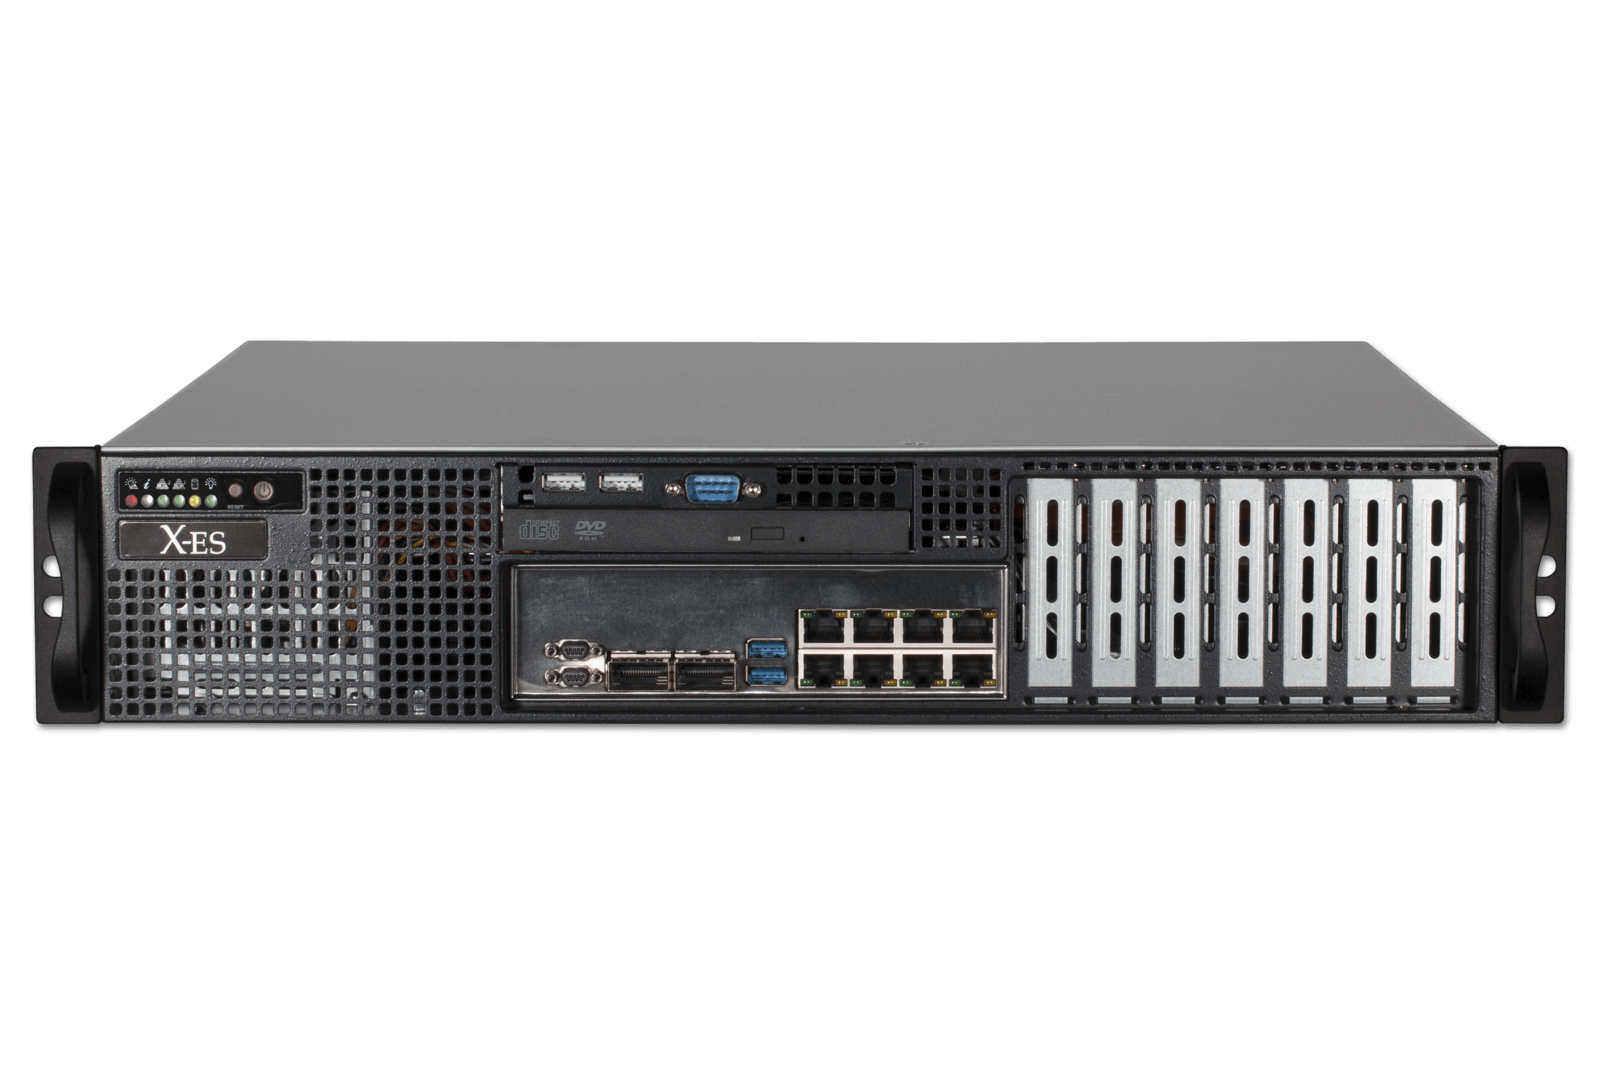 Xpand9011 Highly Secure 2u Rackmount Server For Rugged